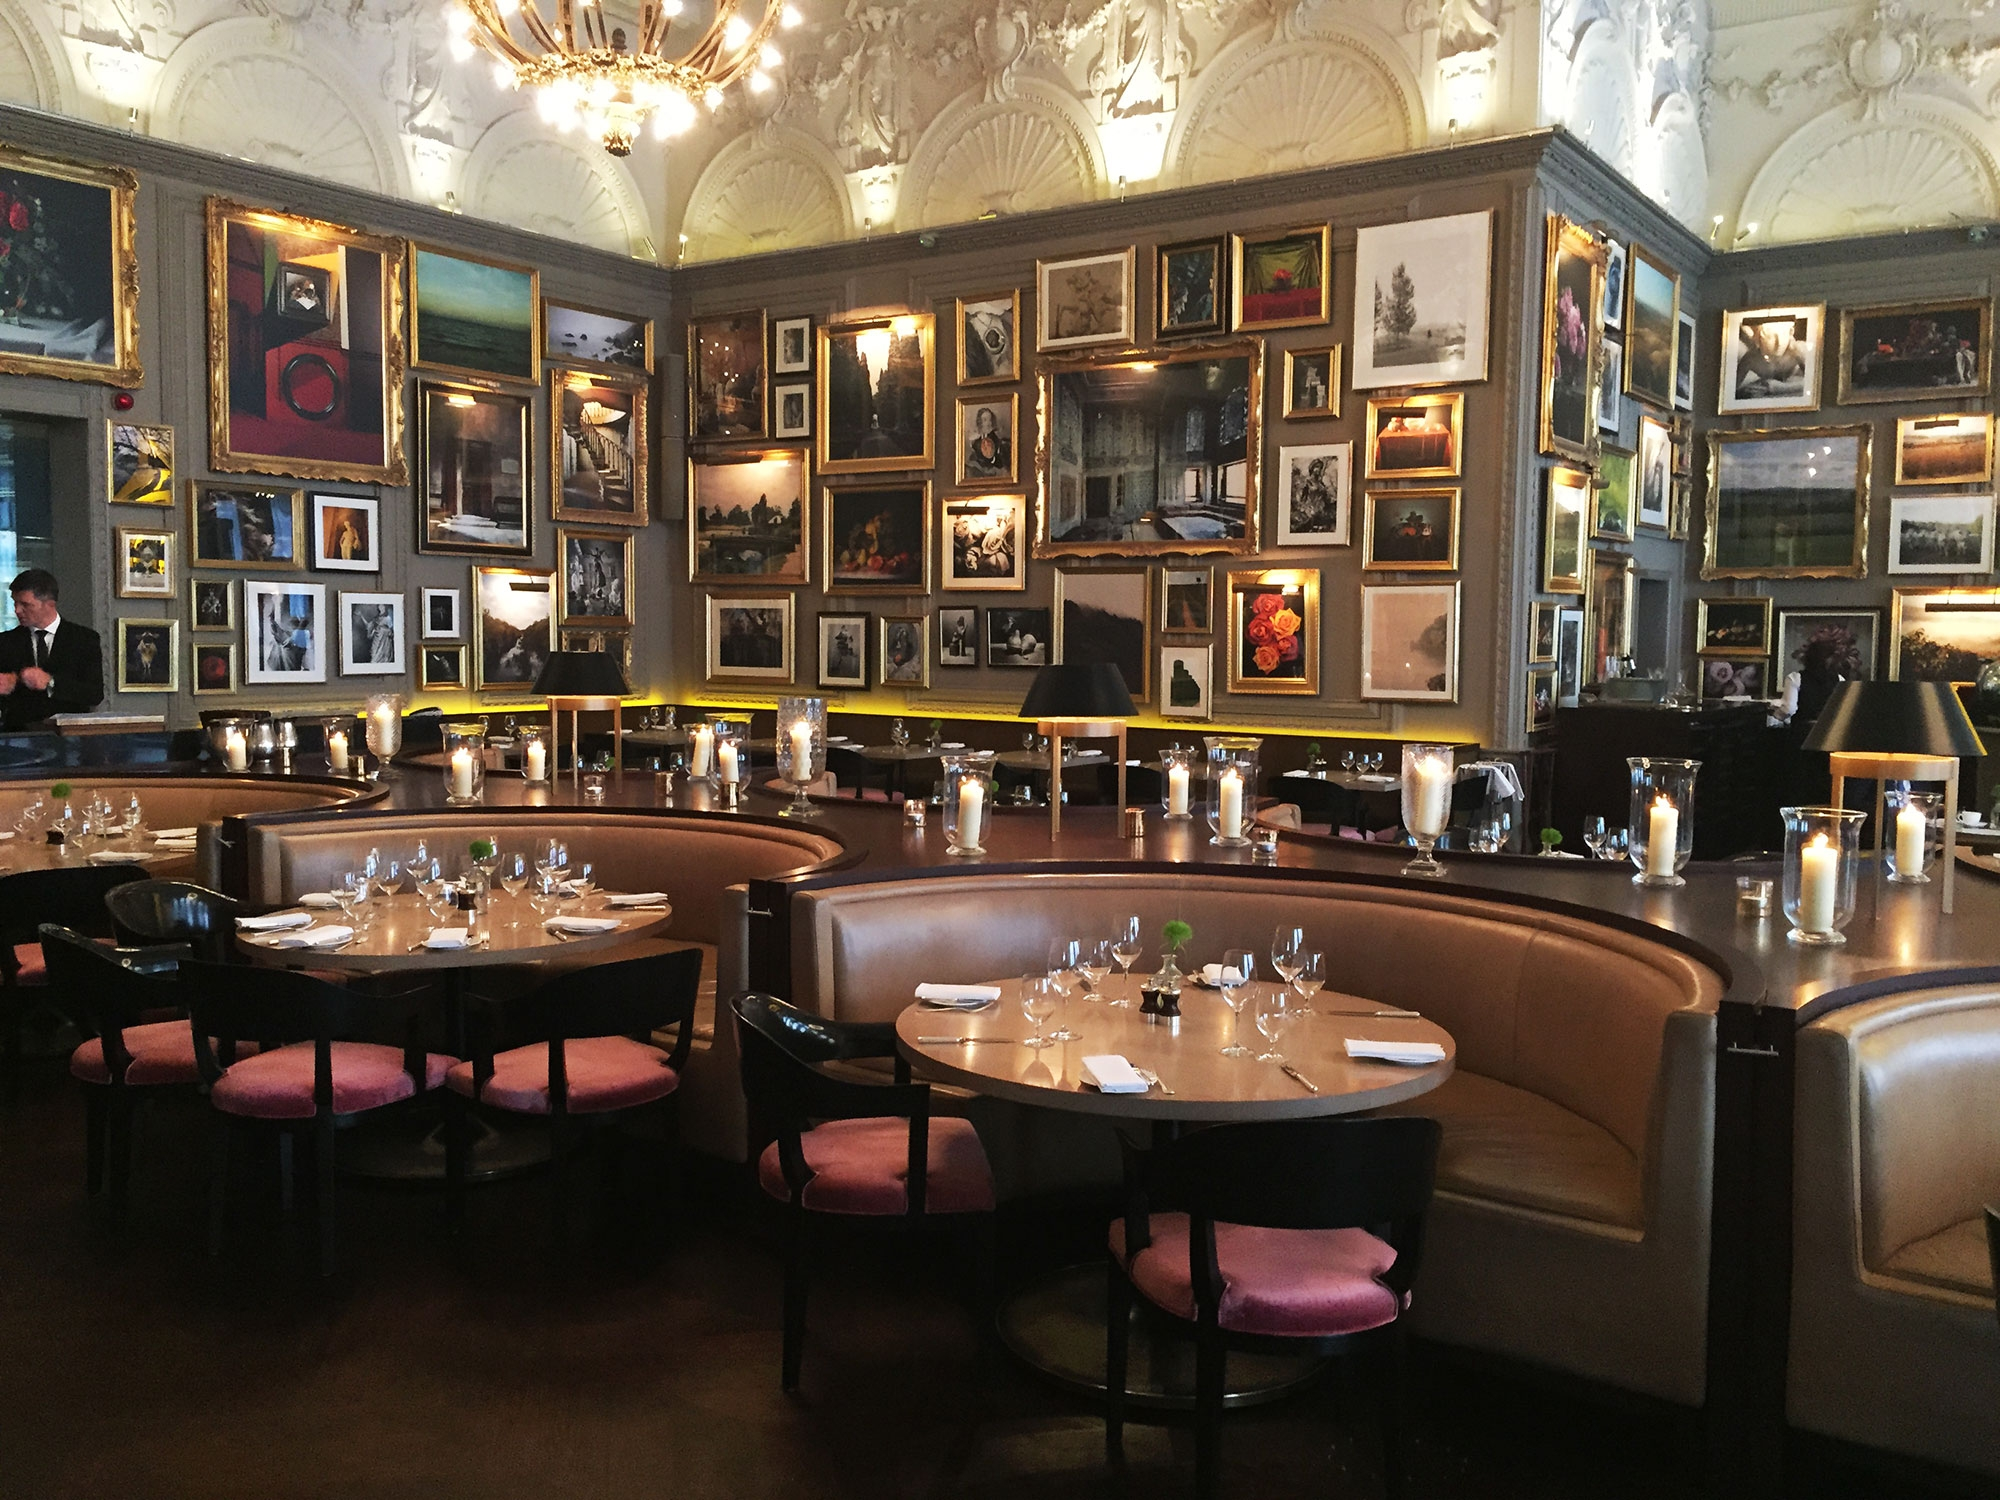 The interior of Berners Tavern contains framed pictures covering the walls and booth seating. June 2016